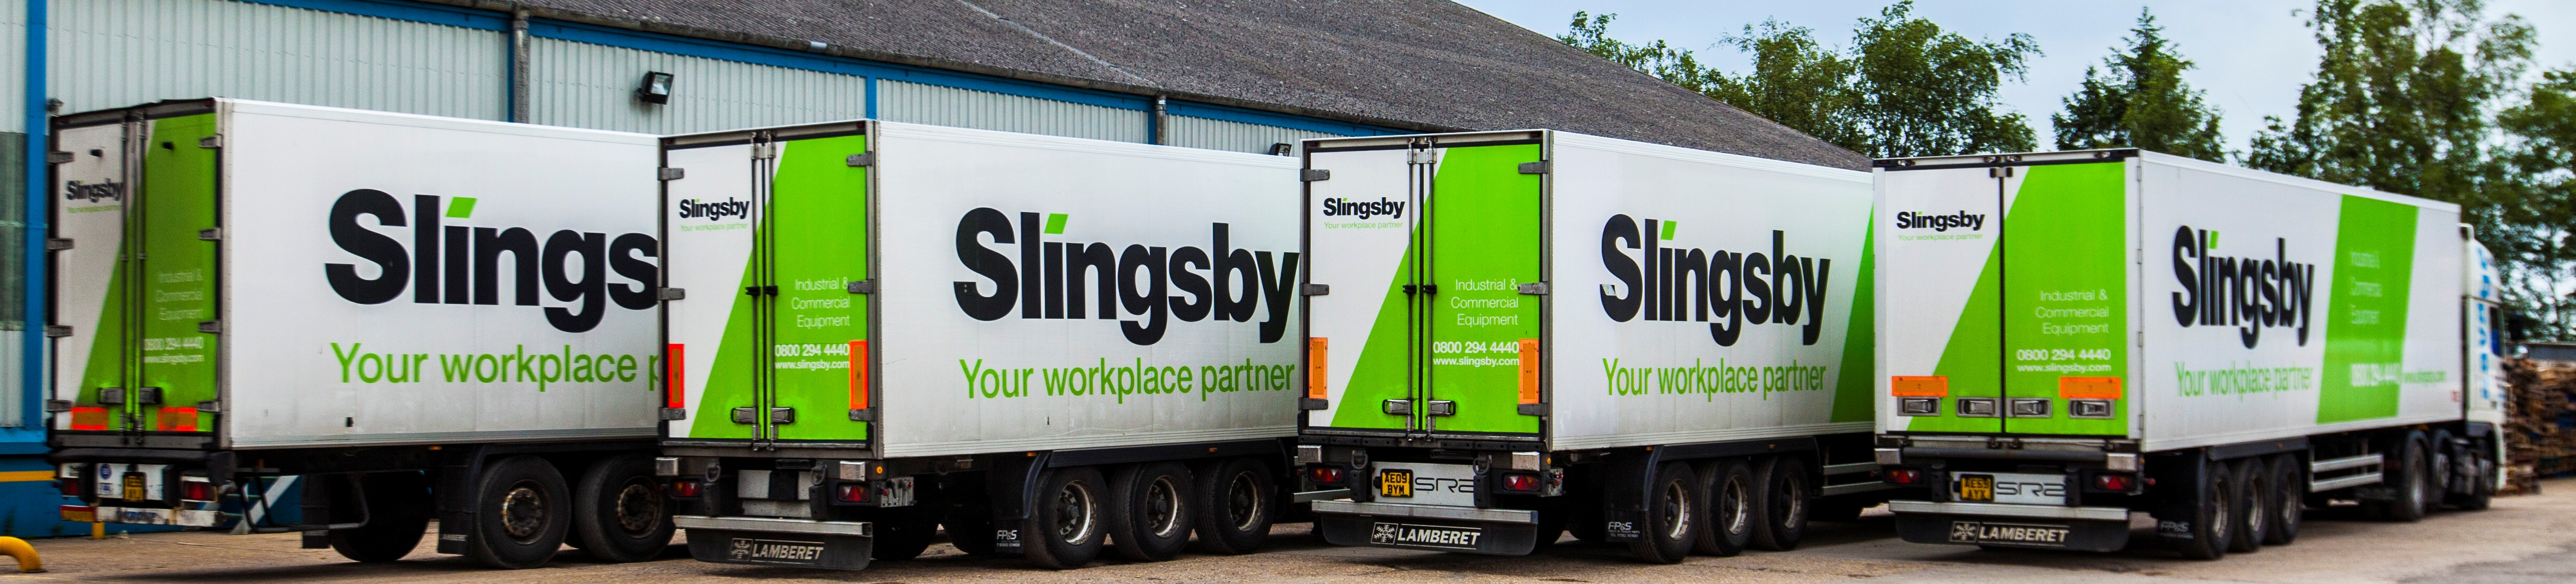 Full Wrap Truck Advertising Slingsby